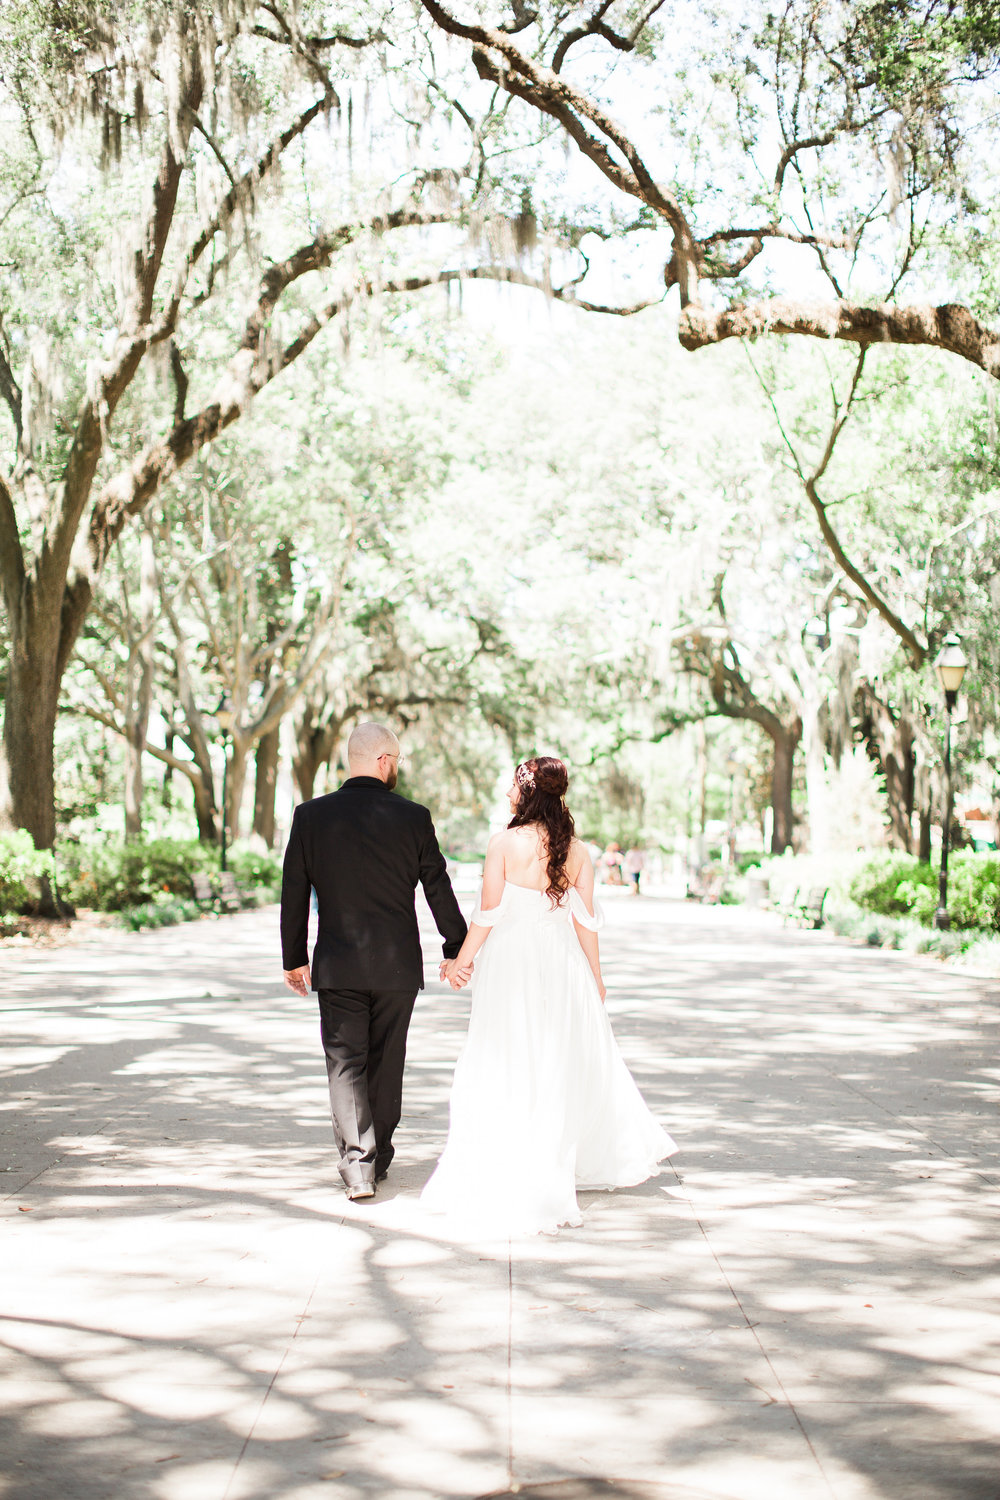 ari-merritt-photography-ivory-and-beau-bridal-boutique-sarah-seven-lafayette-savannah-florist-savannah-floral-designer-10-downing-savannah-wedding-southern-wedding-savannah-bridal-boutique-savannah-wedding-dresses-savannah-wedding-planner-7.jpg